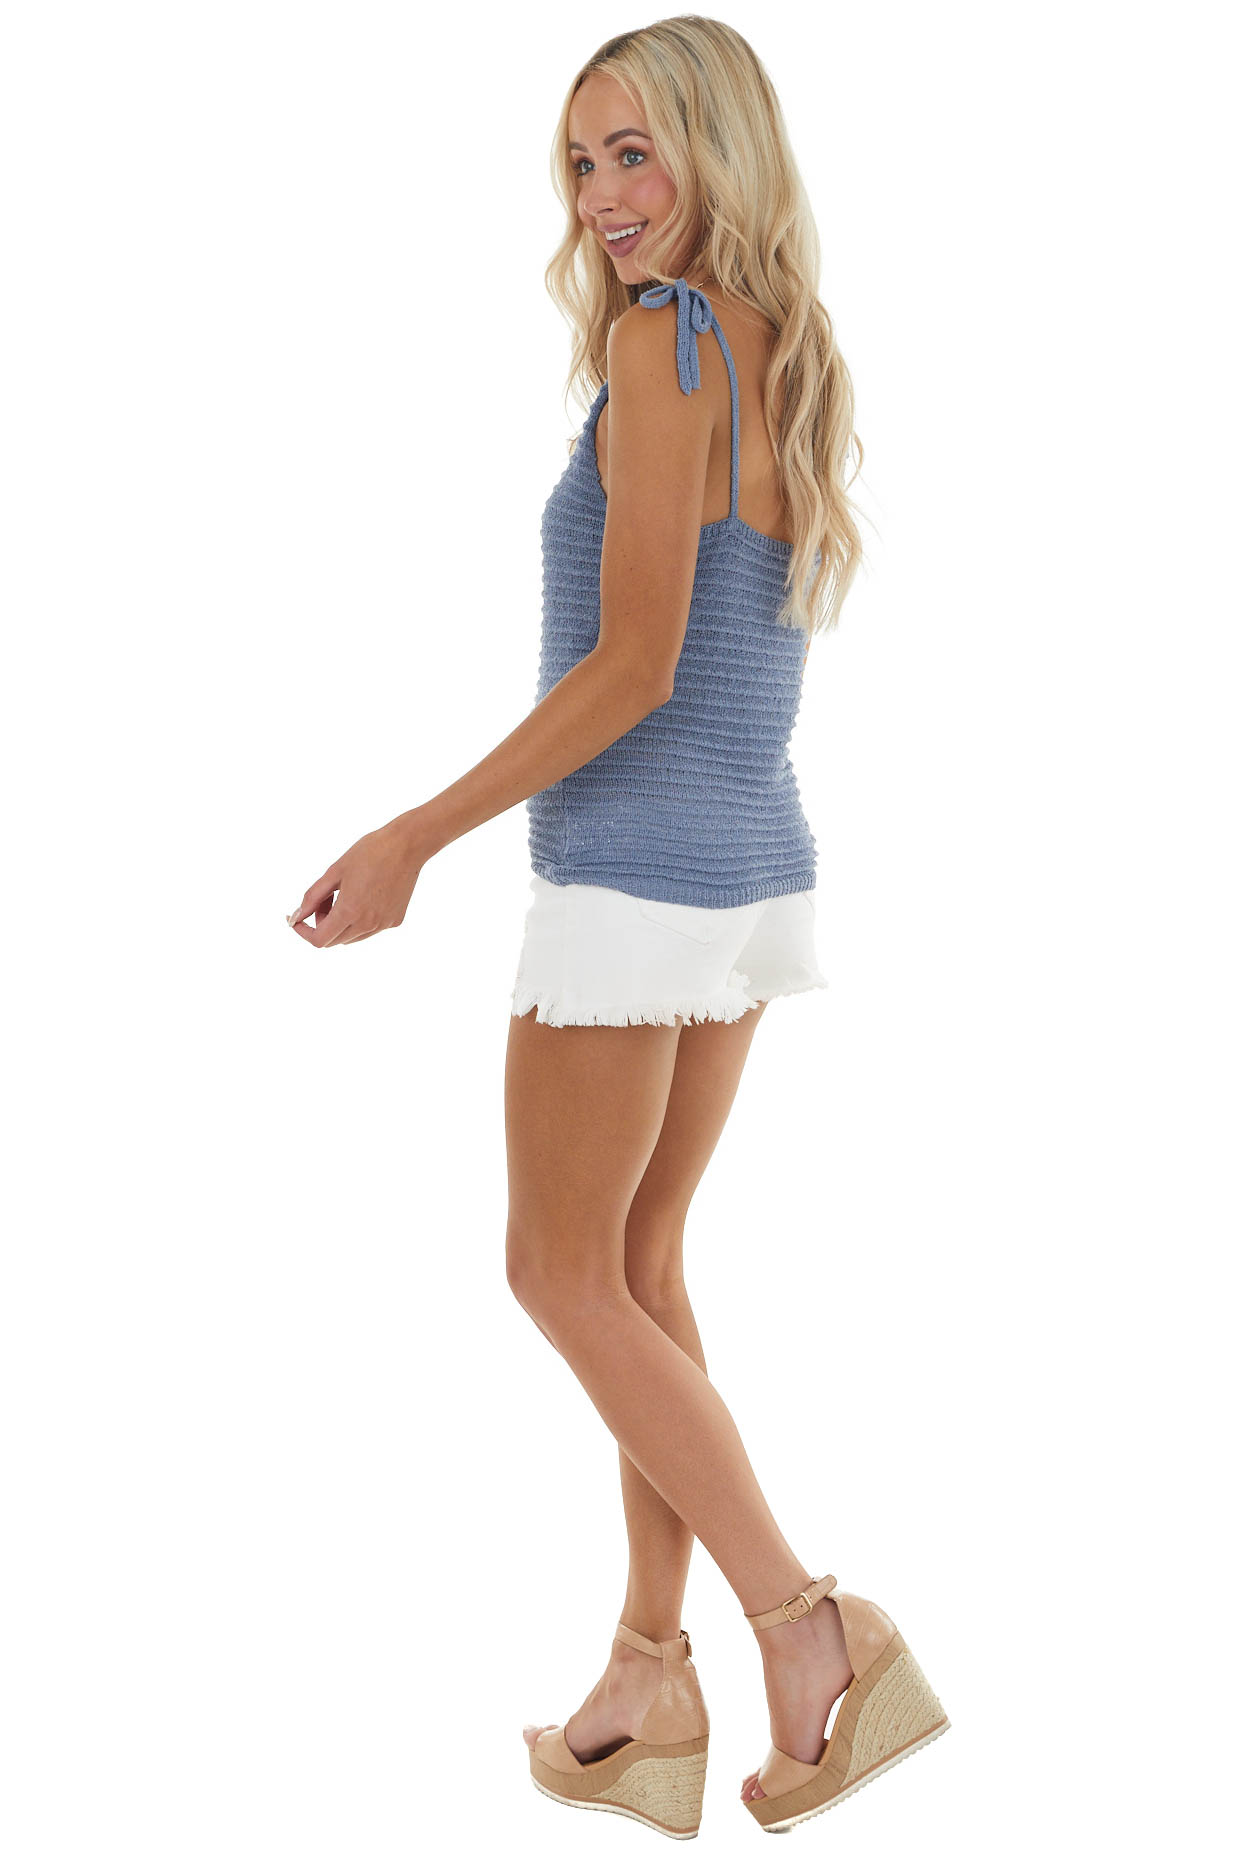 Dusty Blue Loose Knit V Neck Tank with Tie Closure Straps